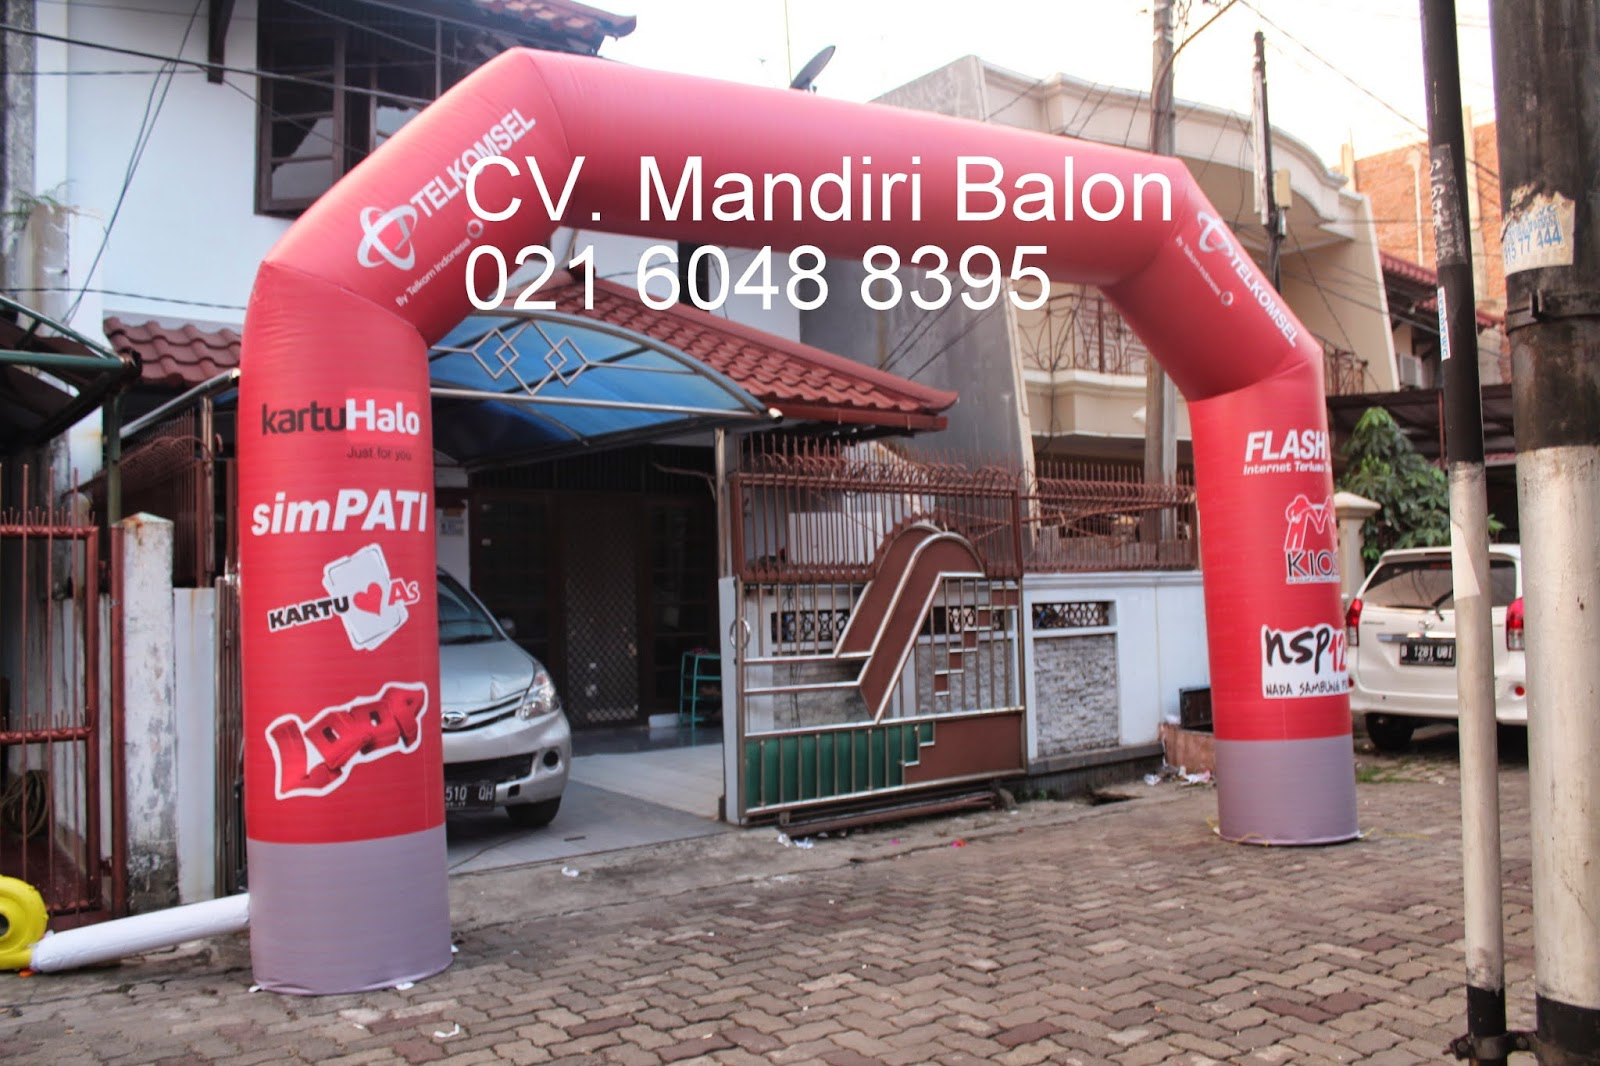 GATE BALON TELKOMSEL PAPUA